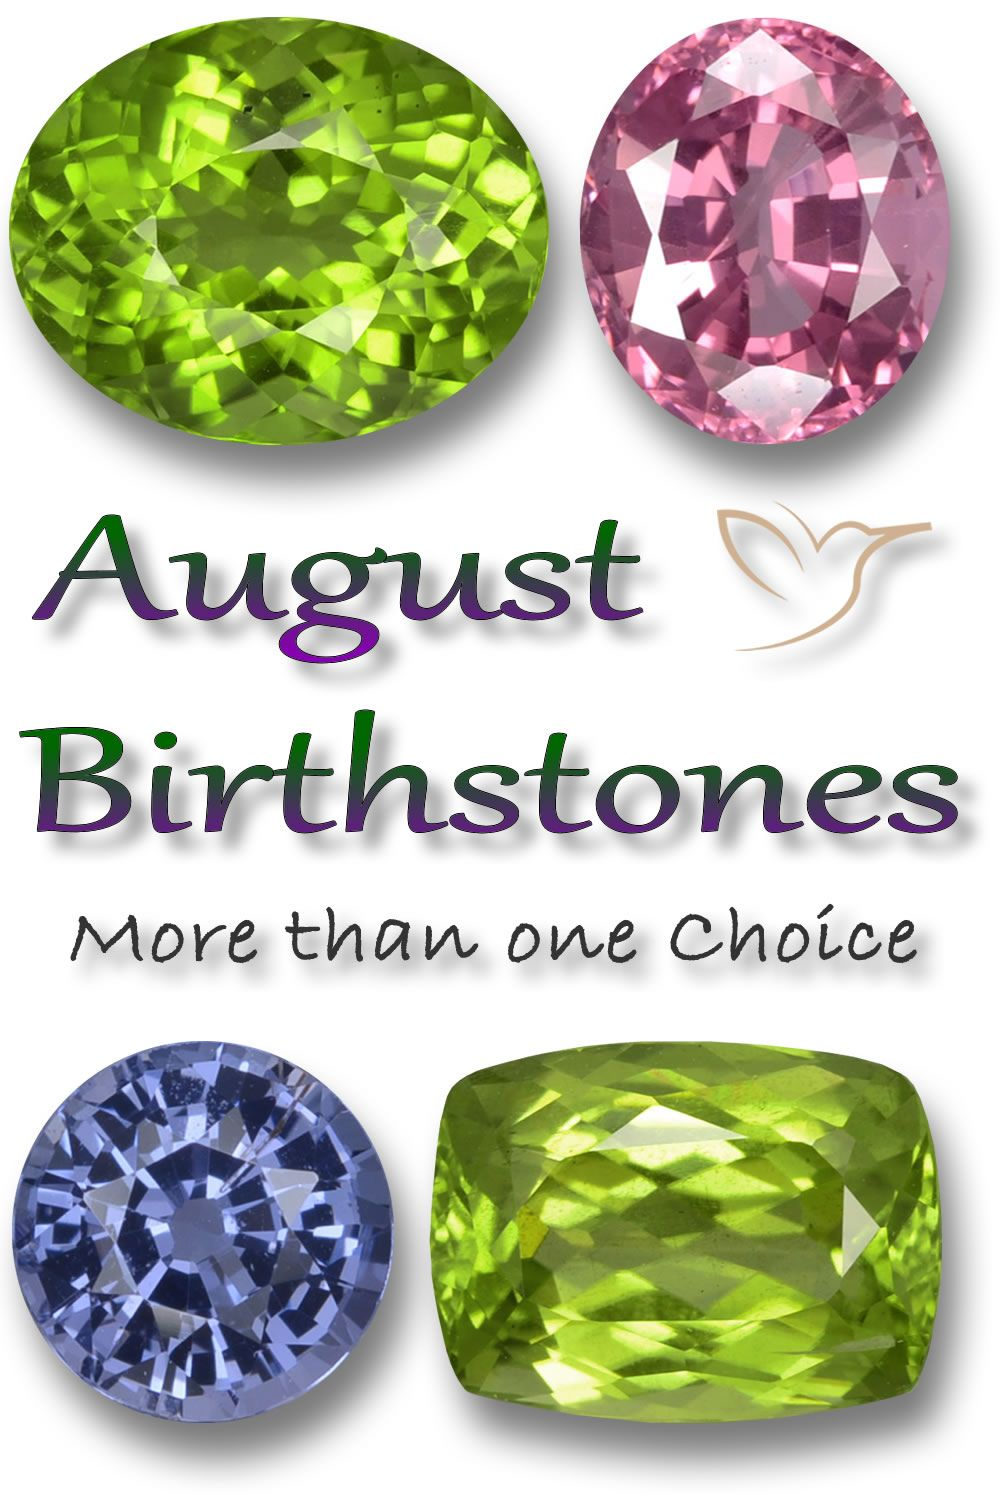 August Birthstone What Are The Three Birthstones For August In 2020 August Birth Stone Birthstones Peridot Birthstone